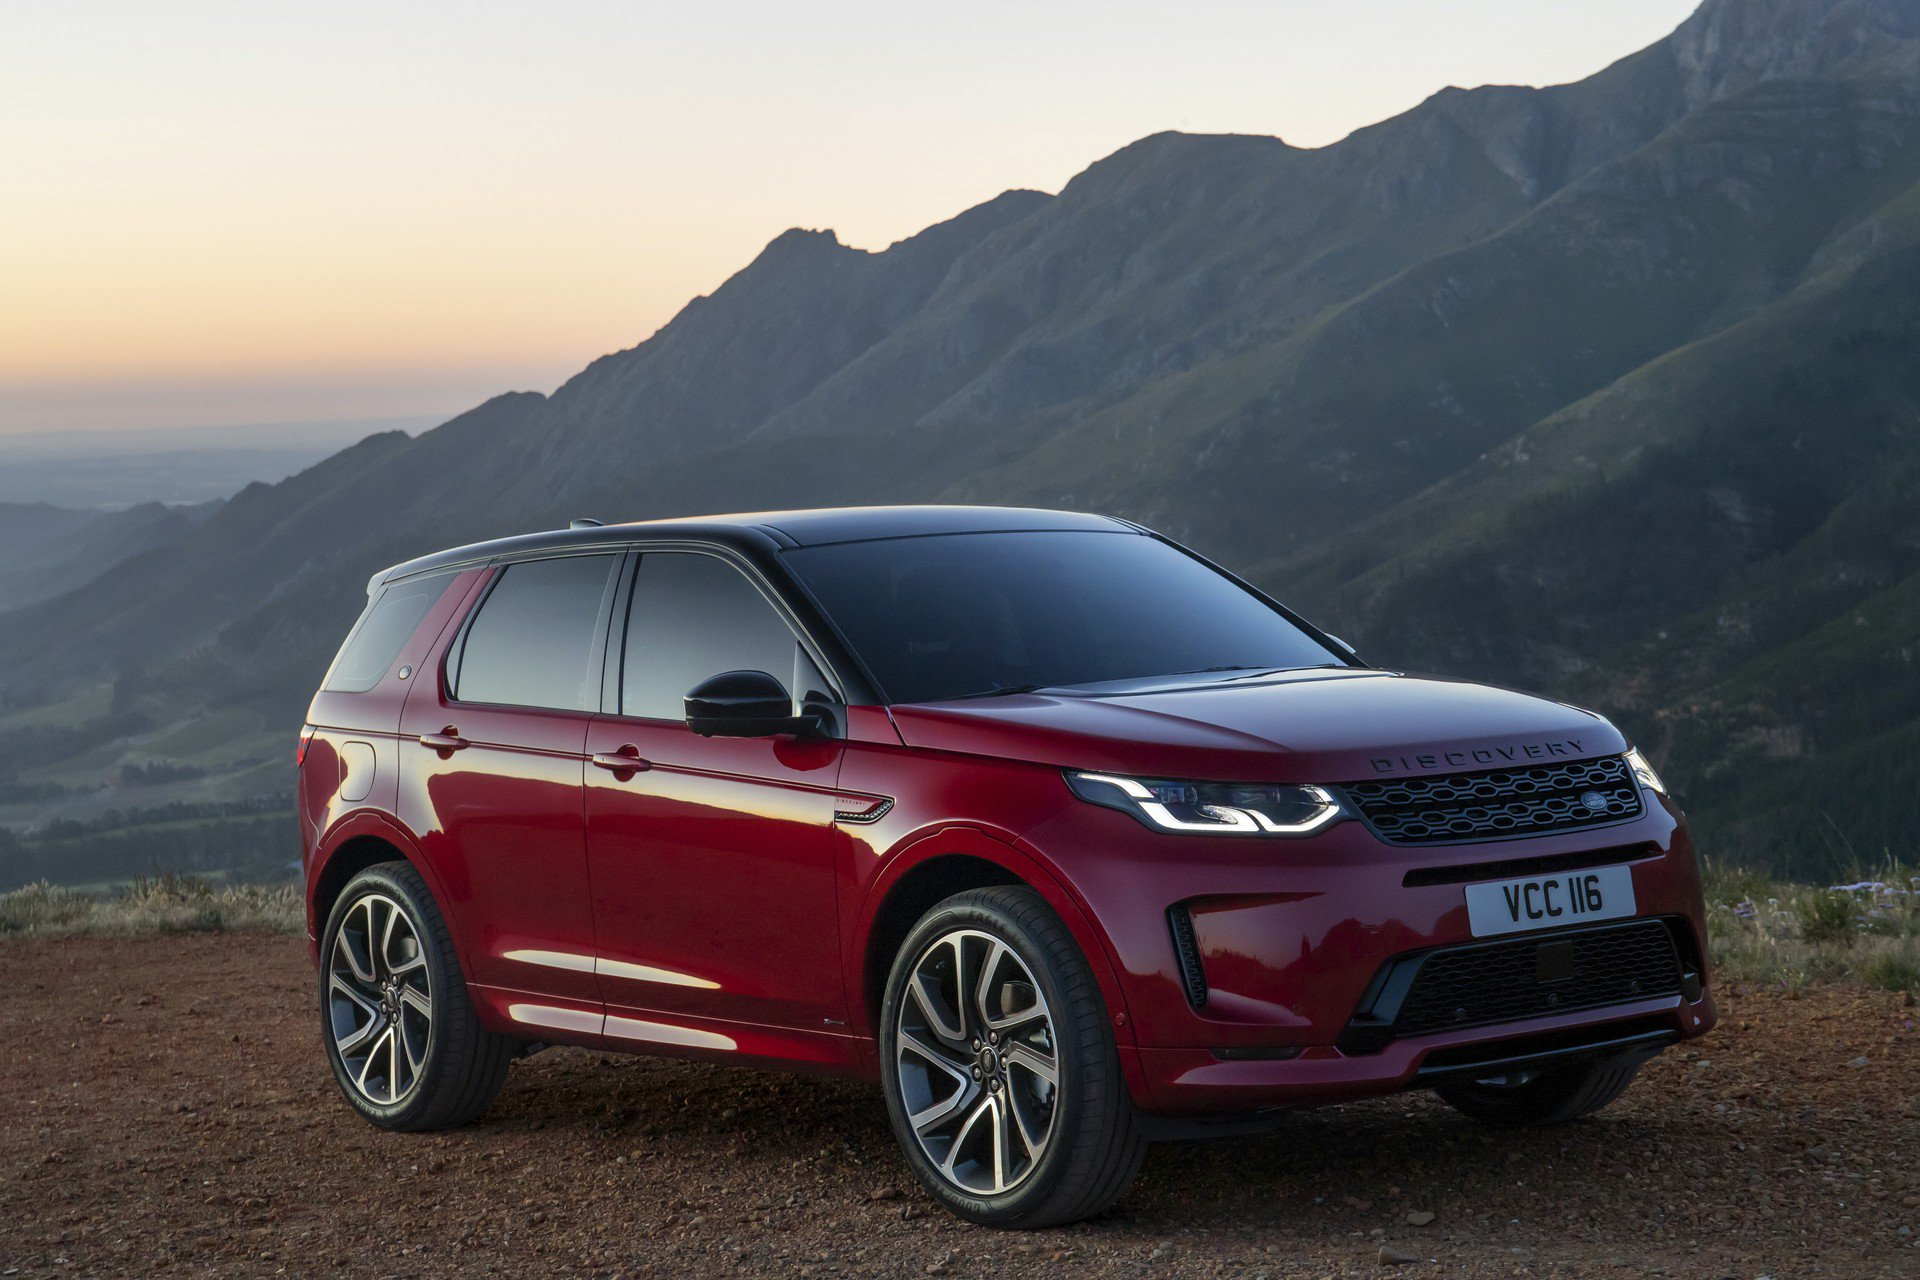 Discovery Land Rover >> 2020 Land Rover Discovery Sport Gets Mild-Hybrid System ...